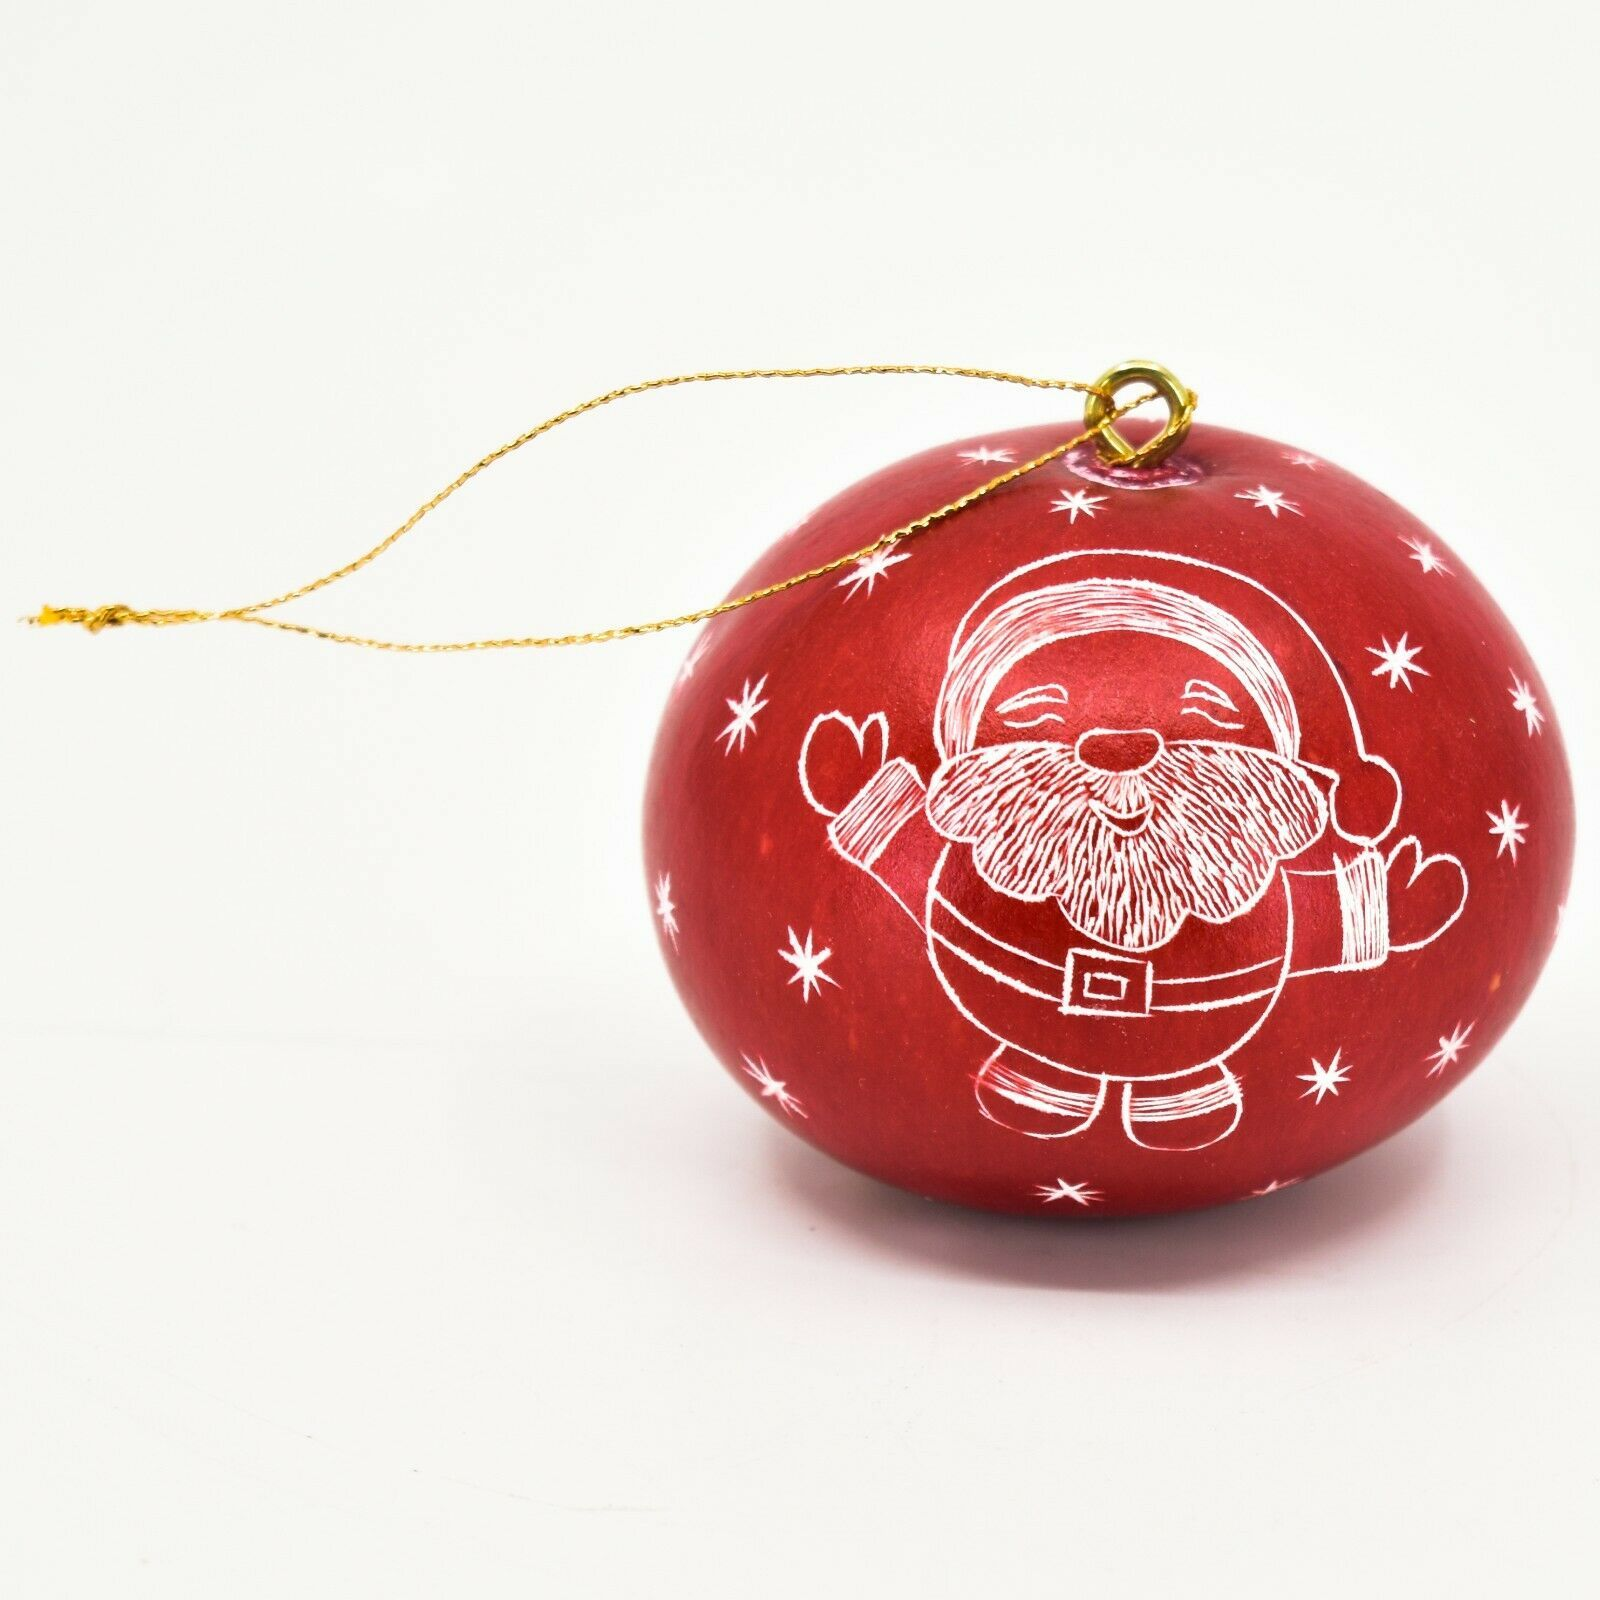 Handcrafted Carved Gourd Art Santa w Sleigh Mini Christmas Ornament Made in Peru